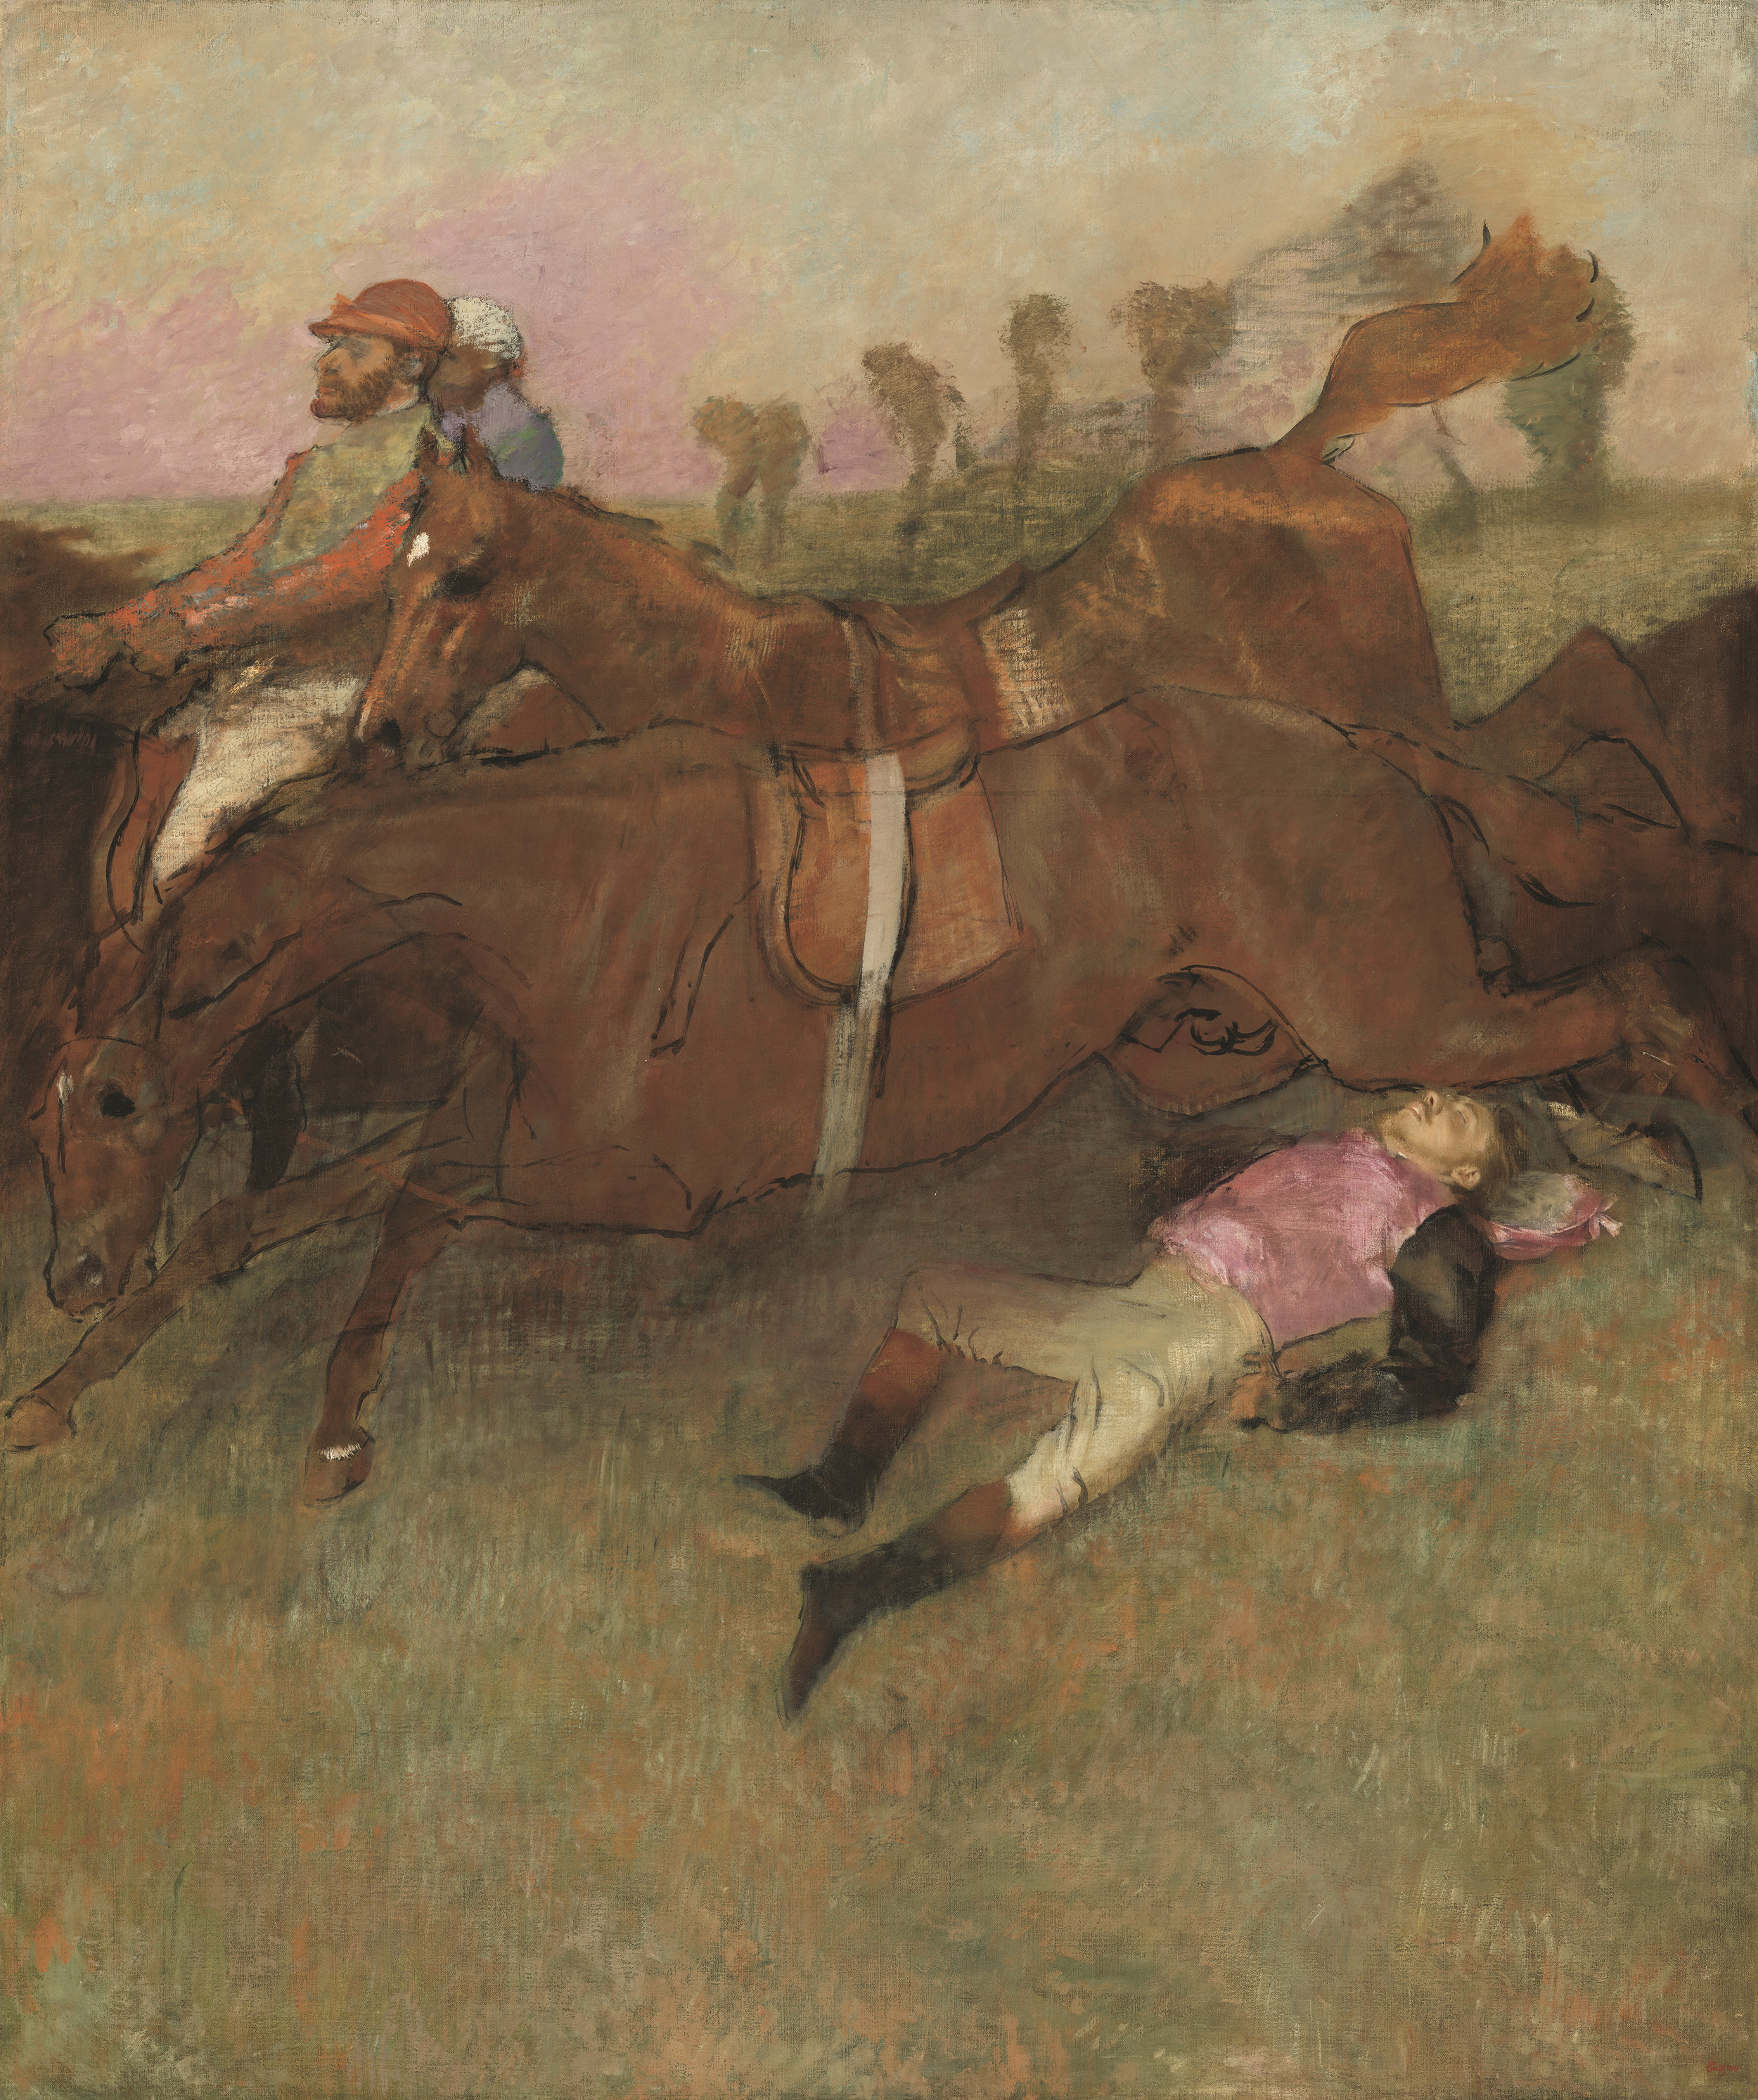 Degas: Passion for Perfection - Rebecca Lawrence reviews the soon to be released film from Exhibition on Screen.